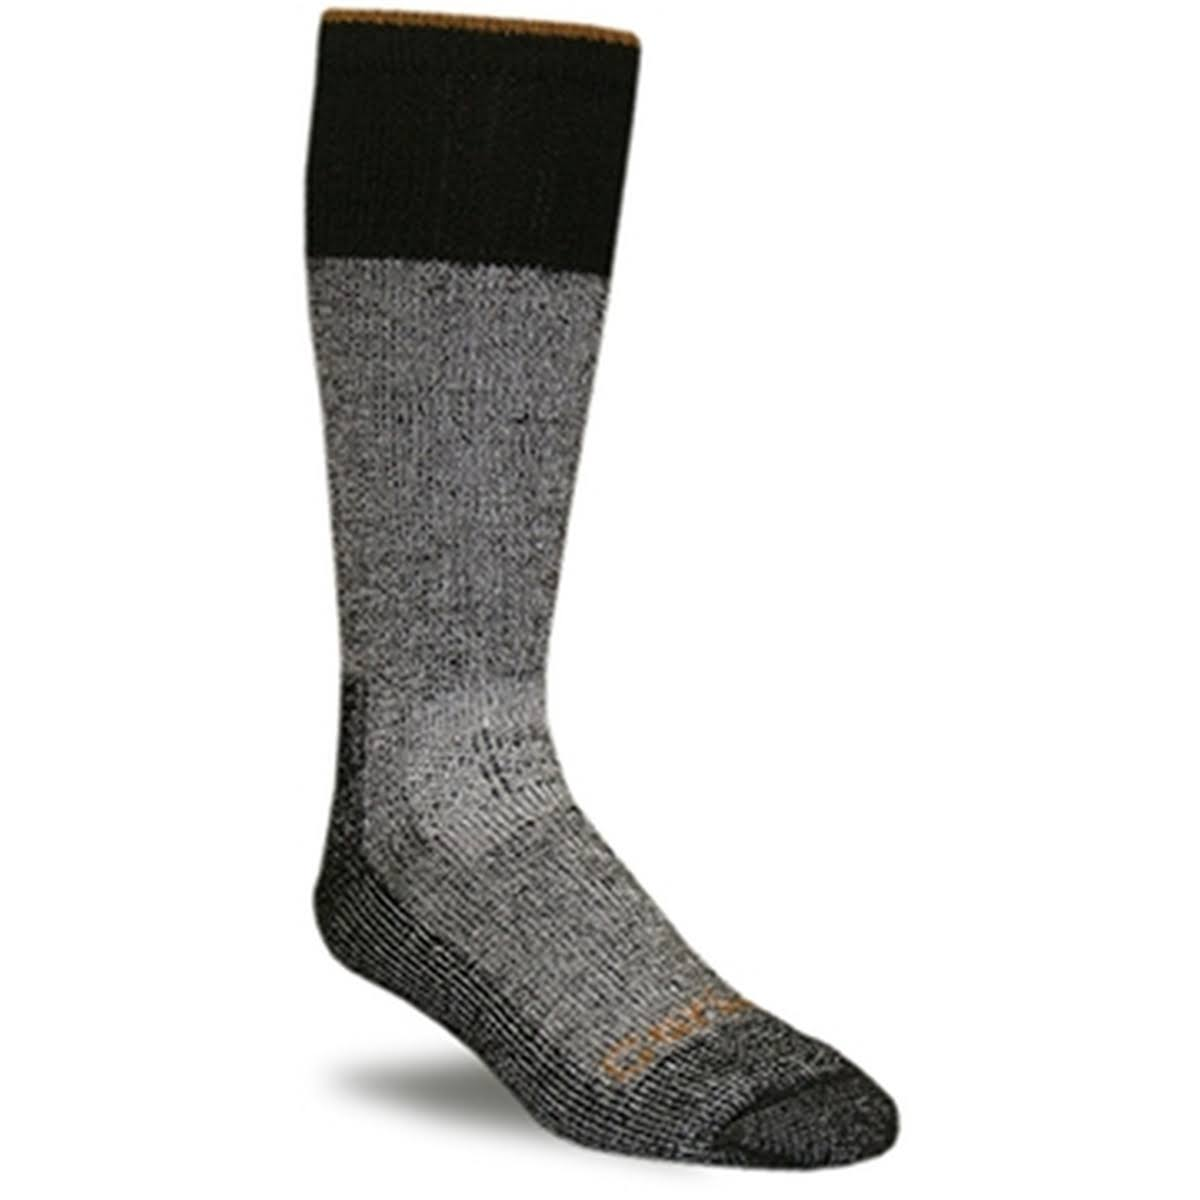 Carhartt Mens Extremes Cold Weather Boot Socks - Blackheather, X-Large